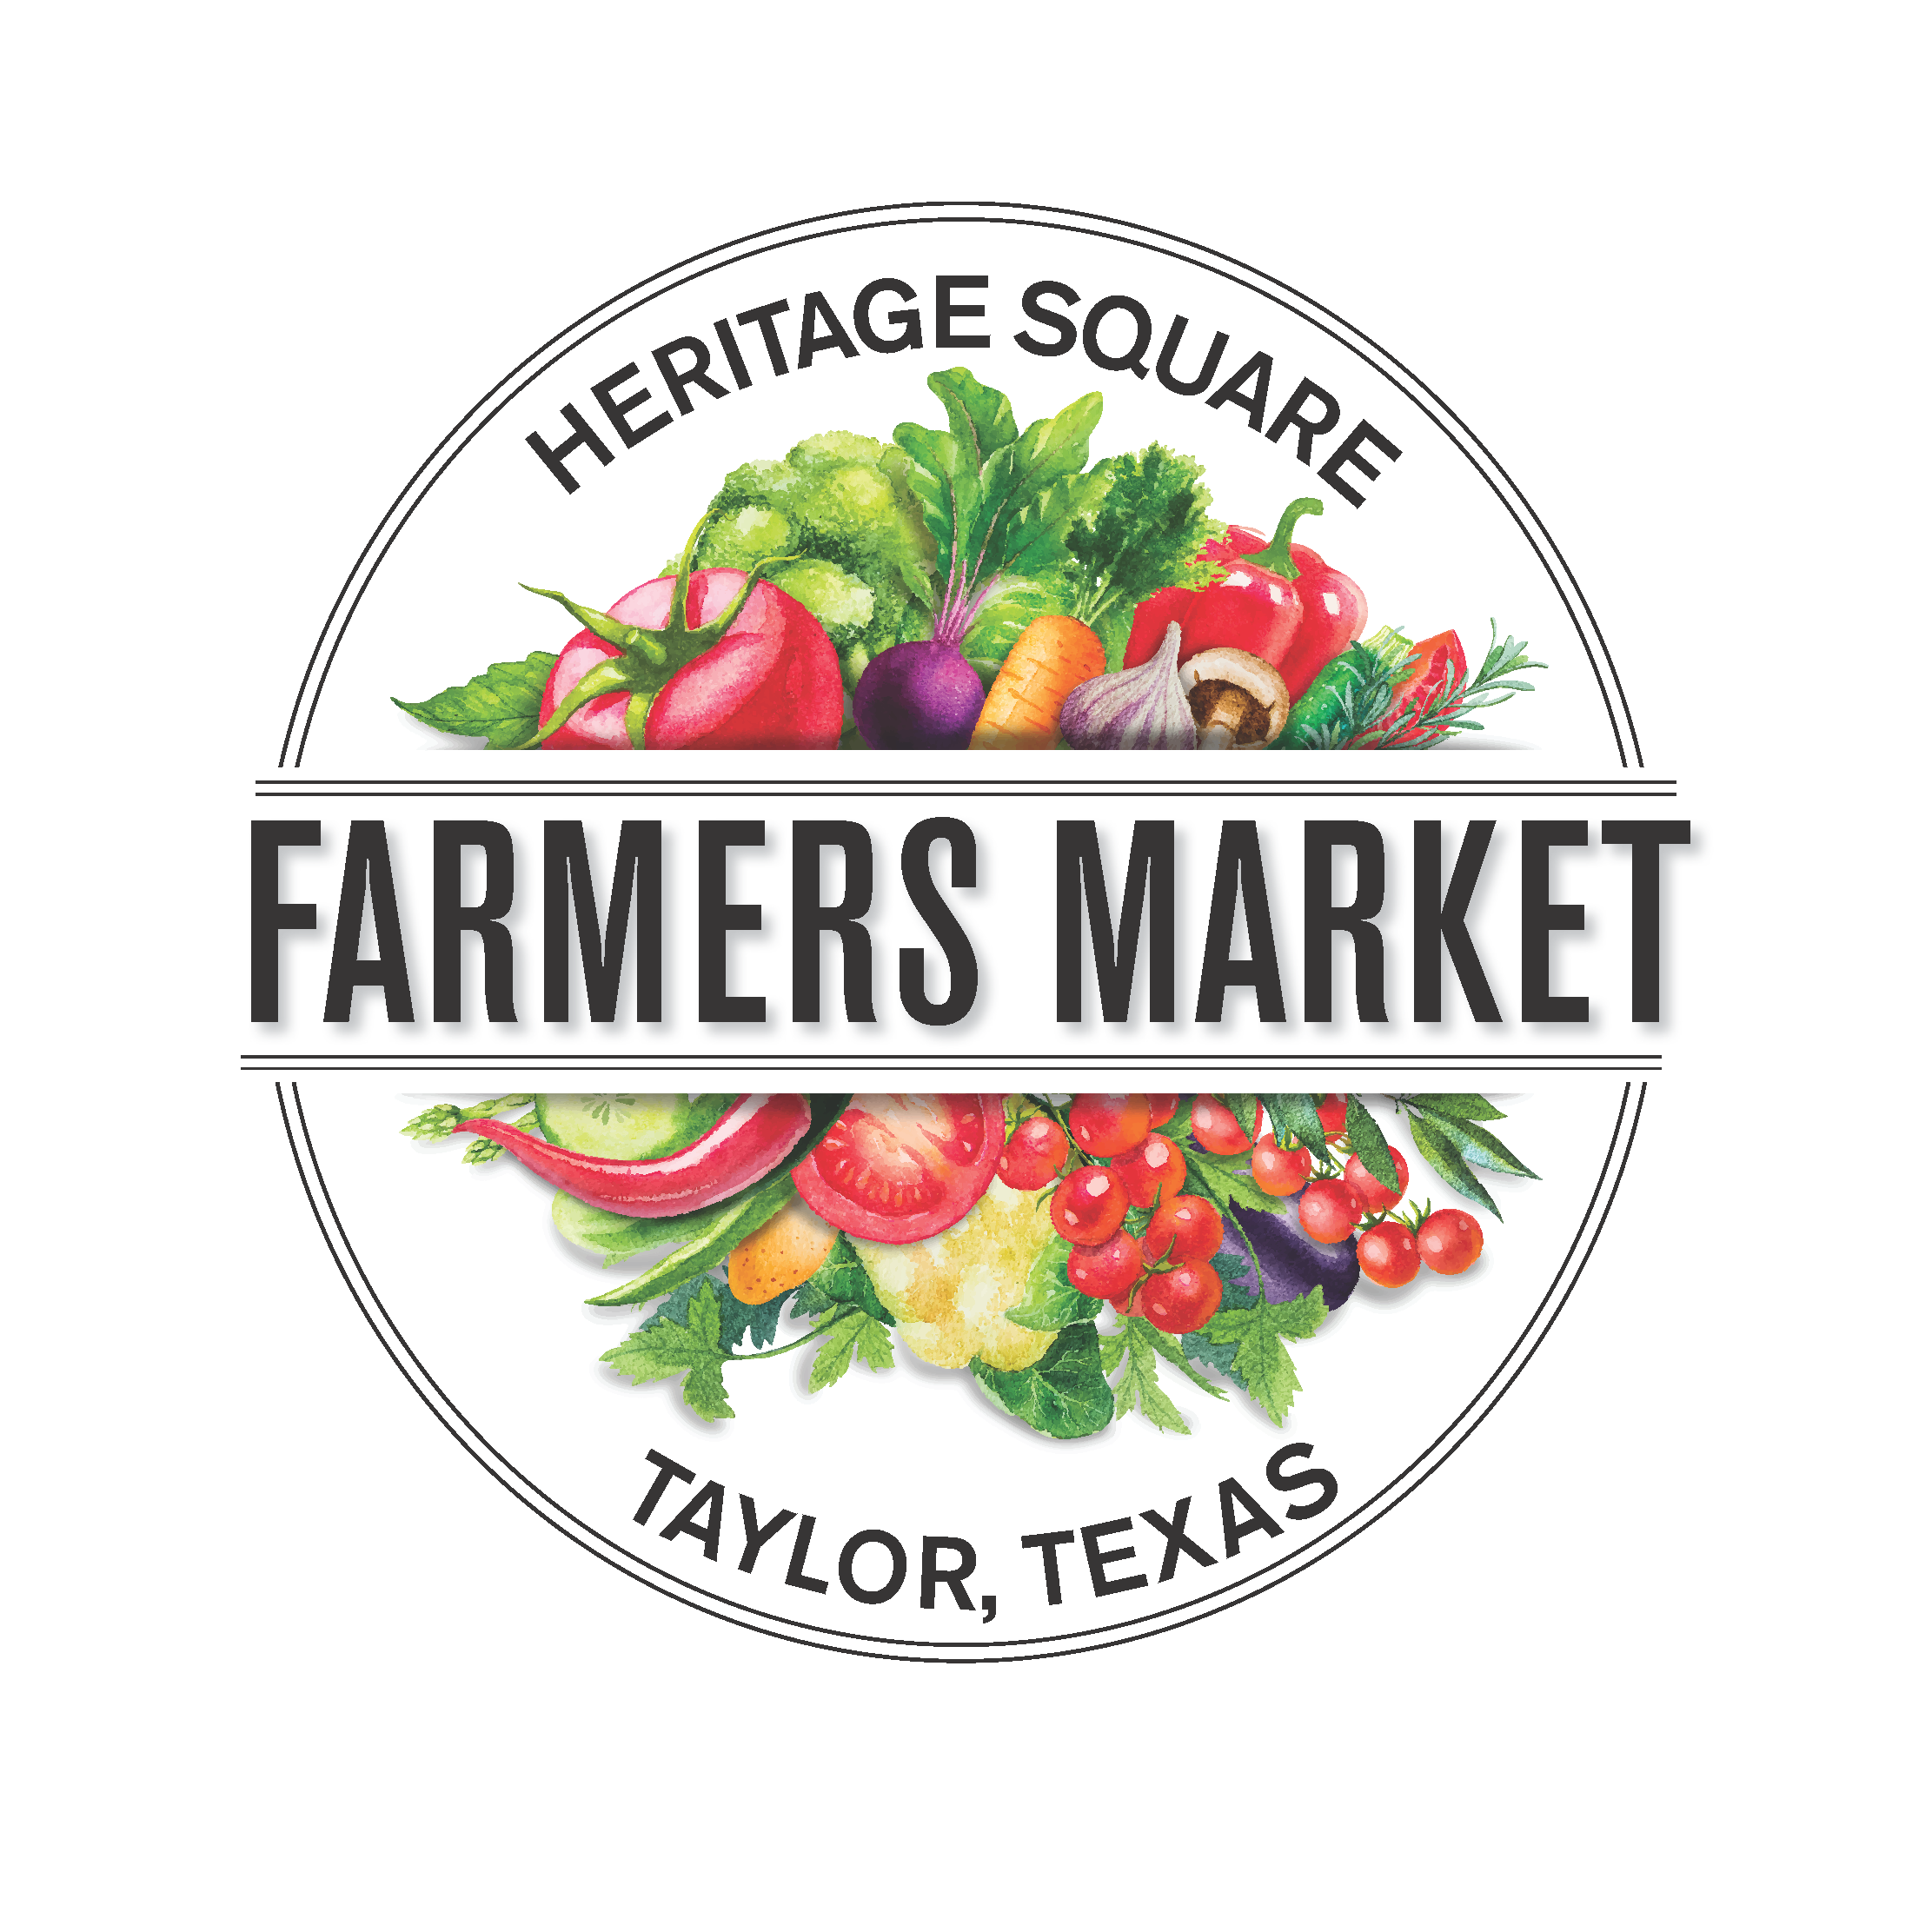 Heritage Square Farmers Market Logo with fruits and vegetables